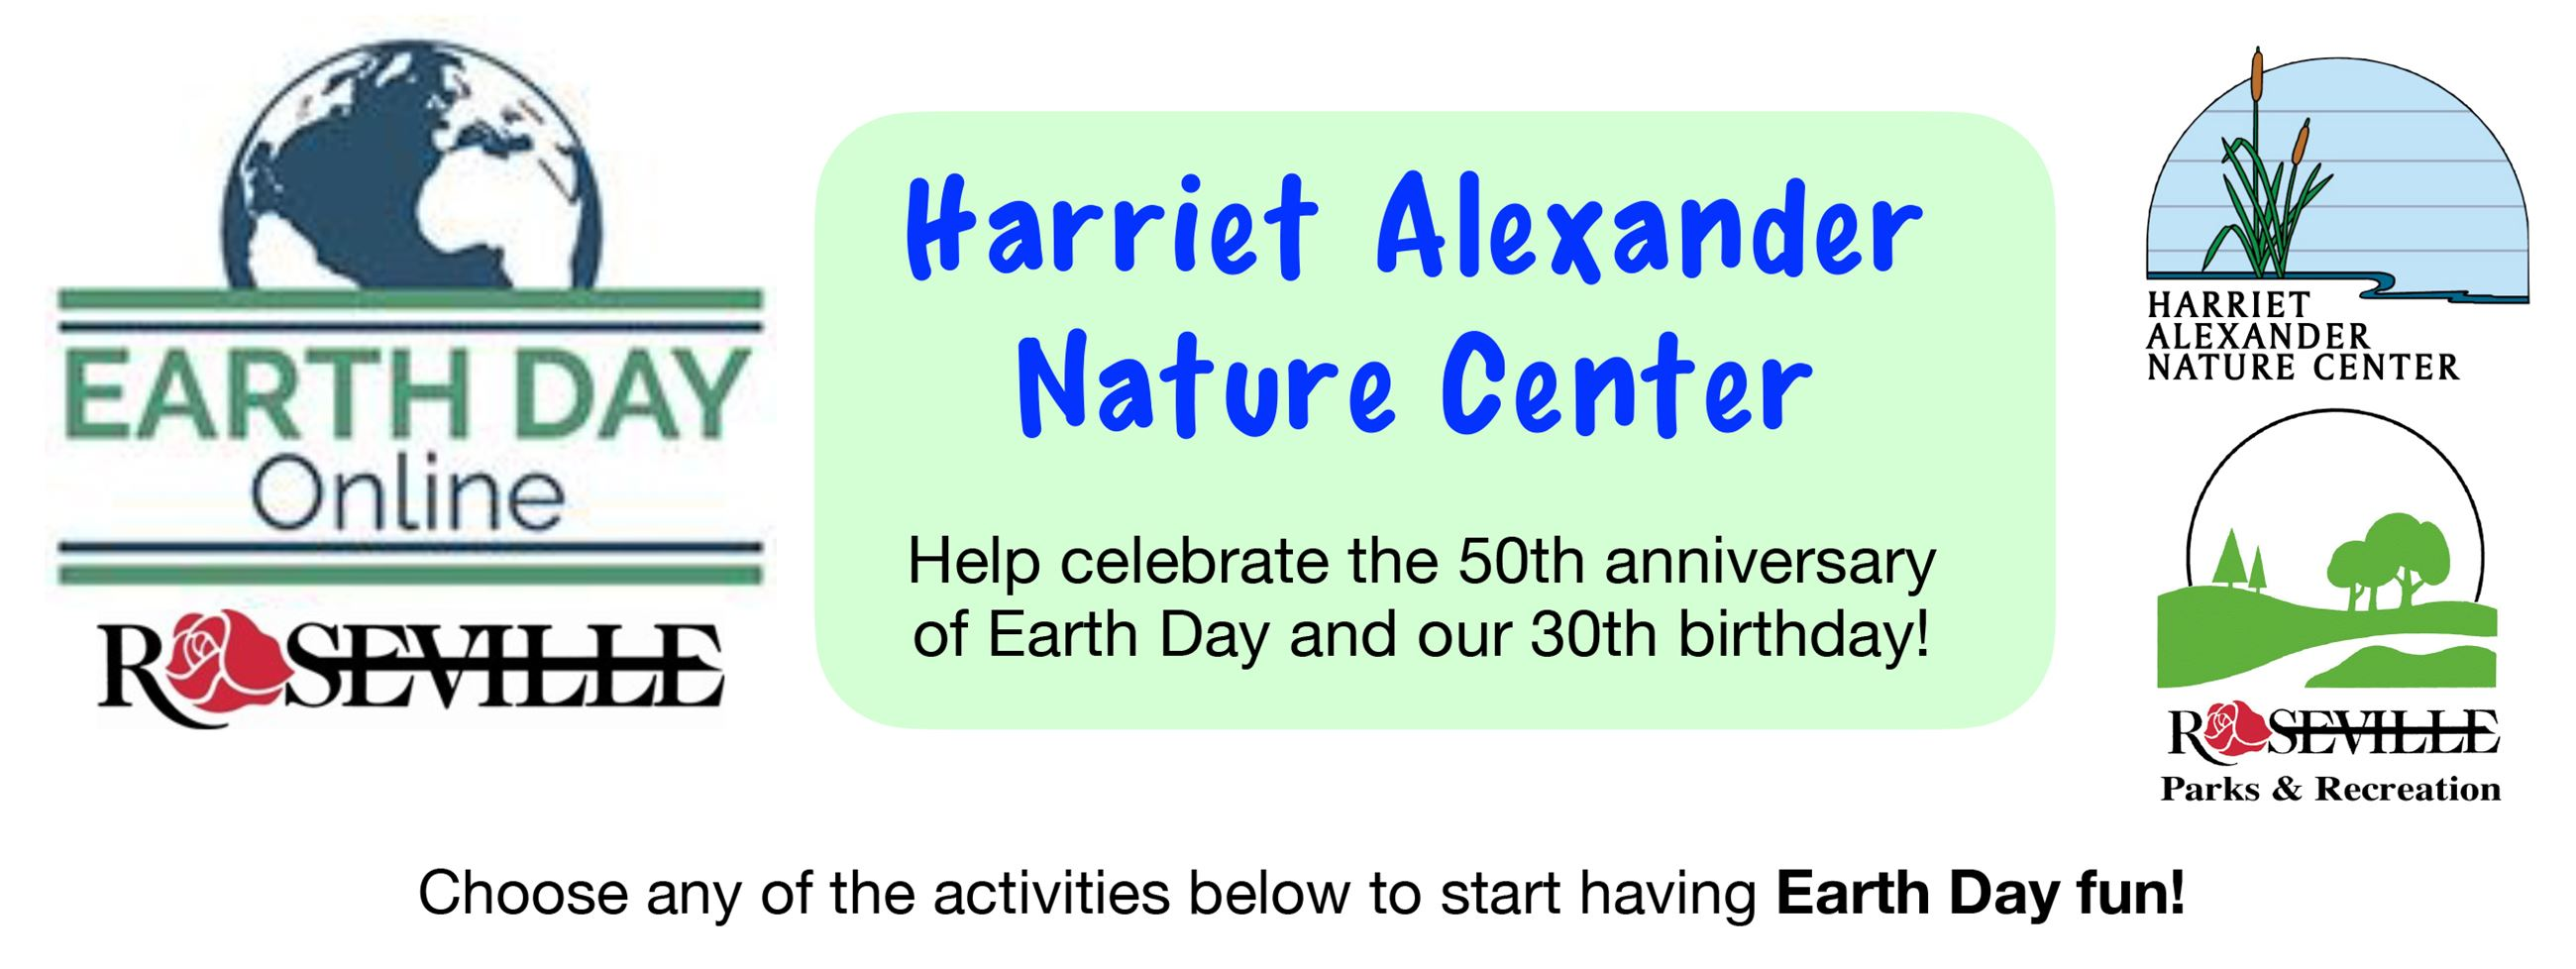 Earth Day Online Webpage header